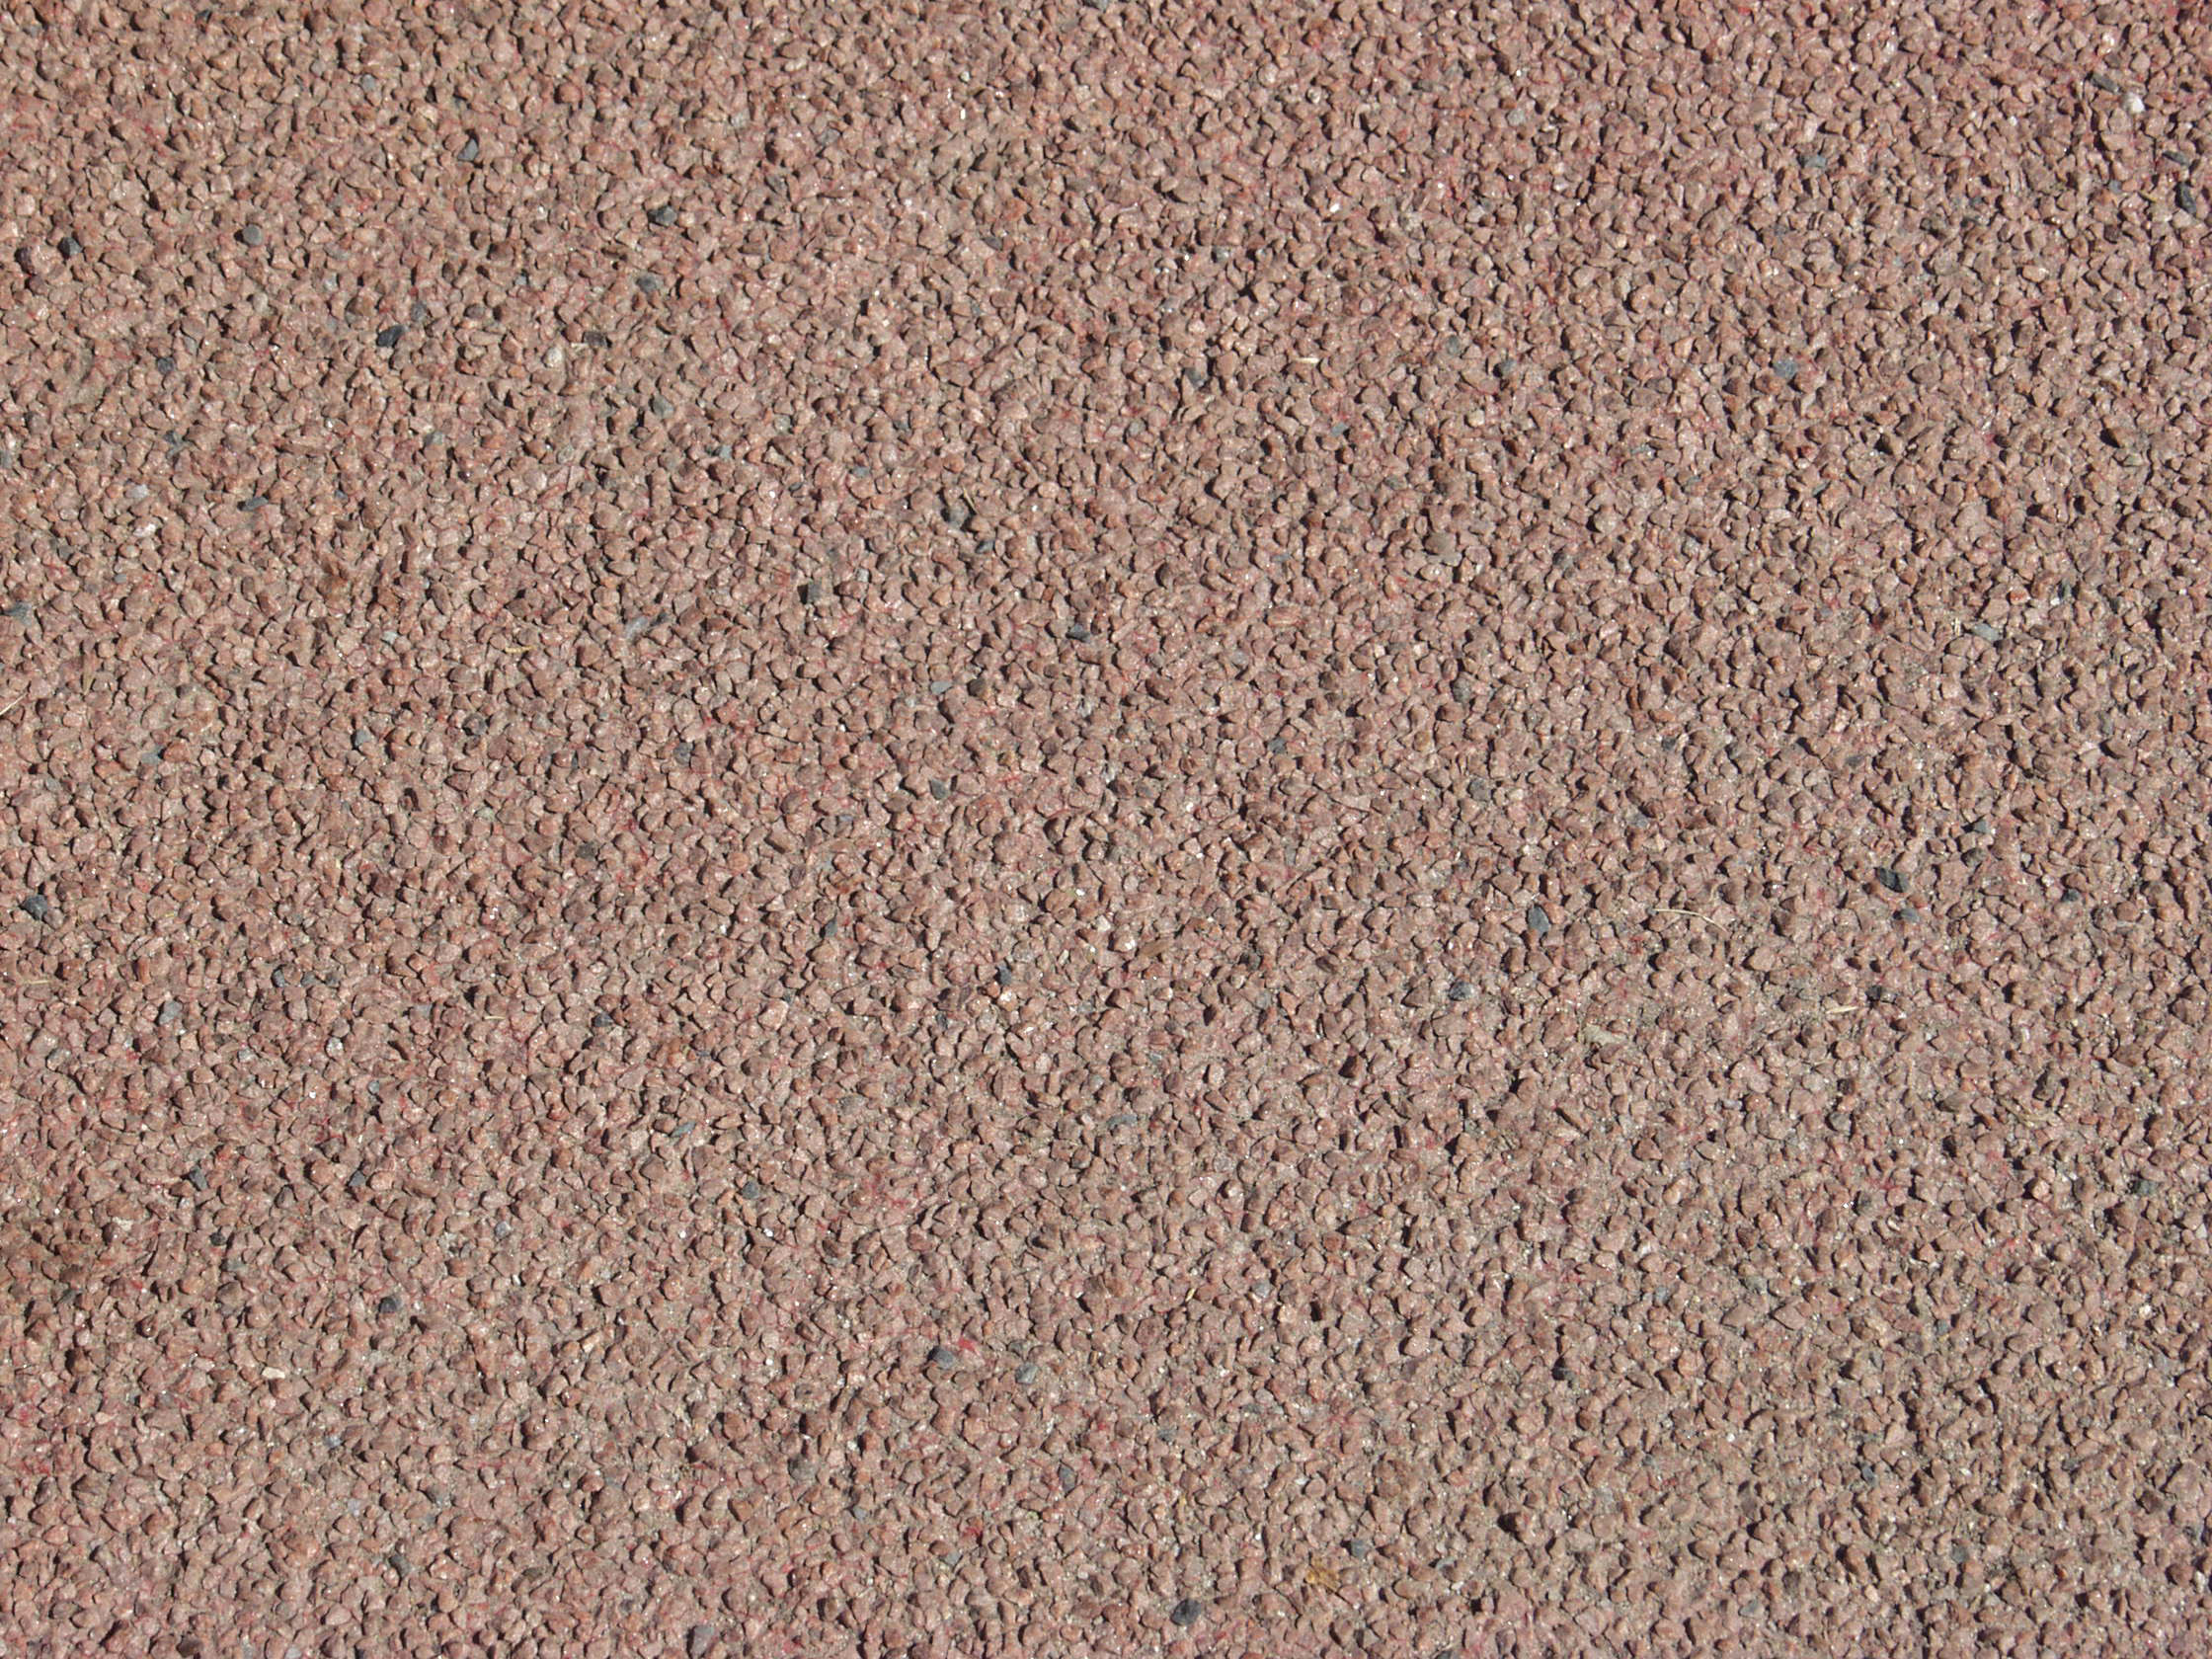 Red asphalt texture background